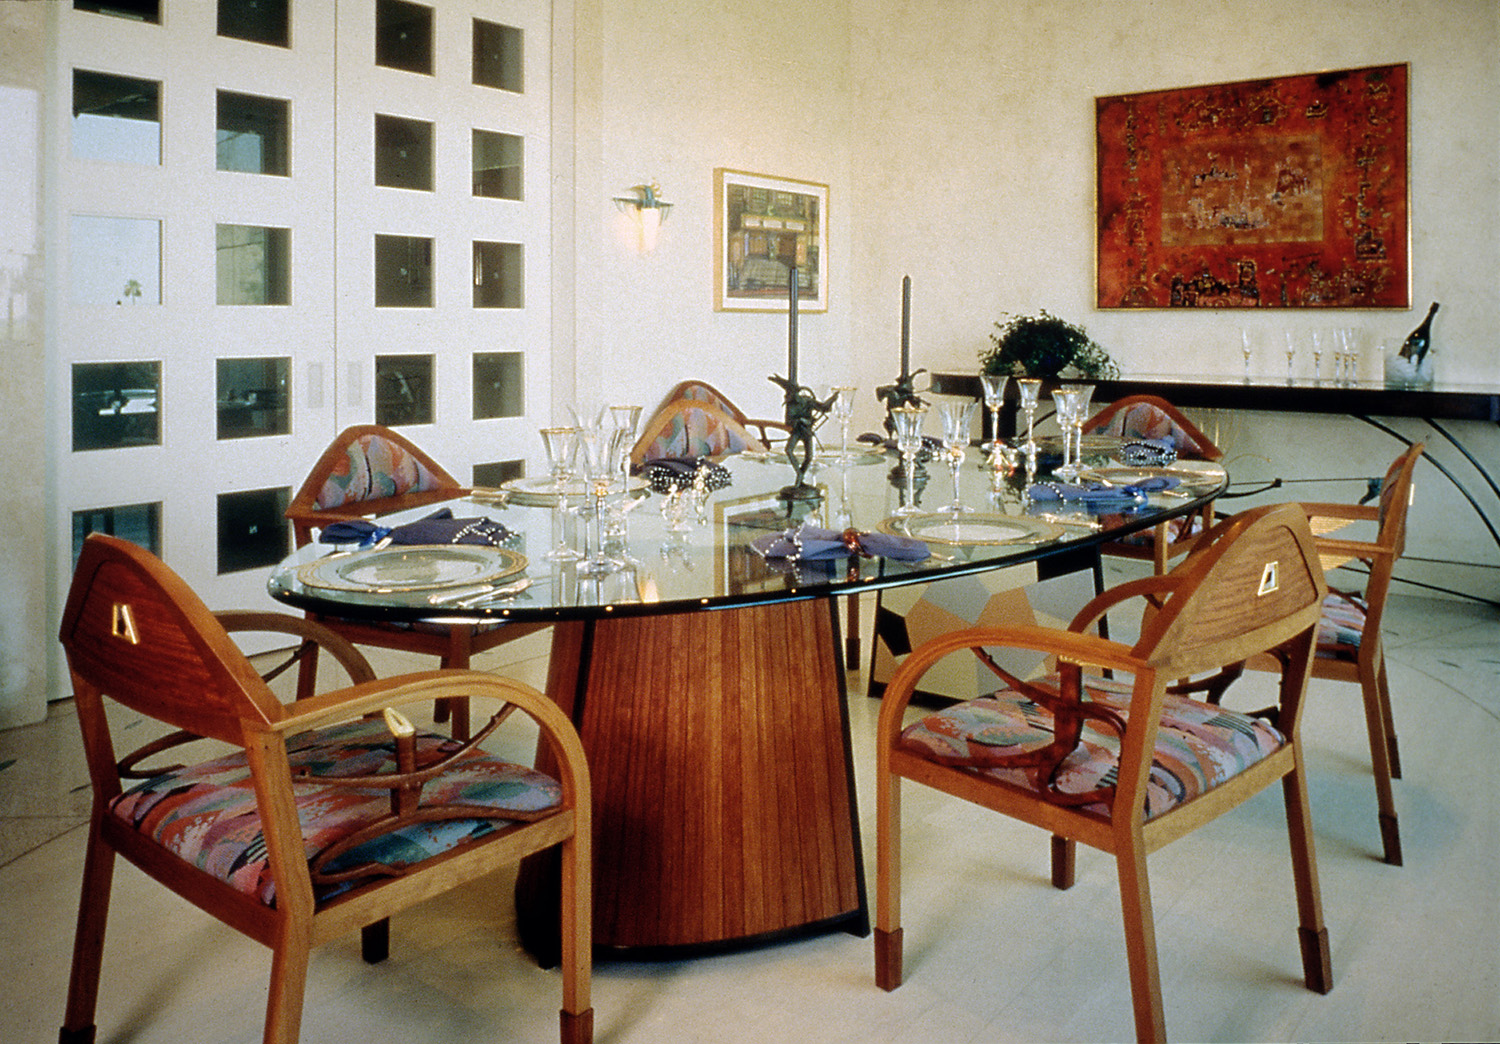 Residential Dining Room 1995. Bronze, plate glass, Vitrolite glass, slumped glass, cherry and bubinga woods. Private residence, Beverly Hills, CA